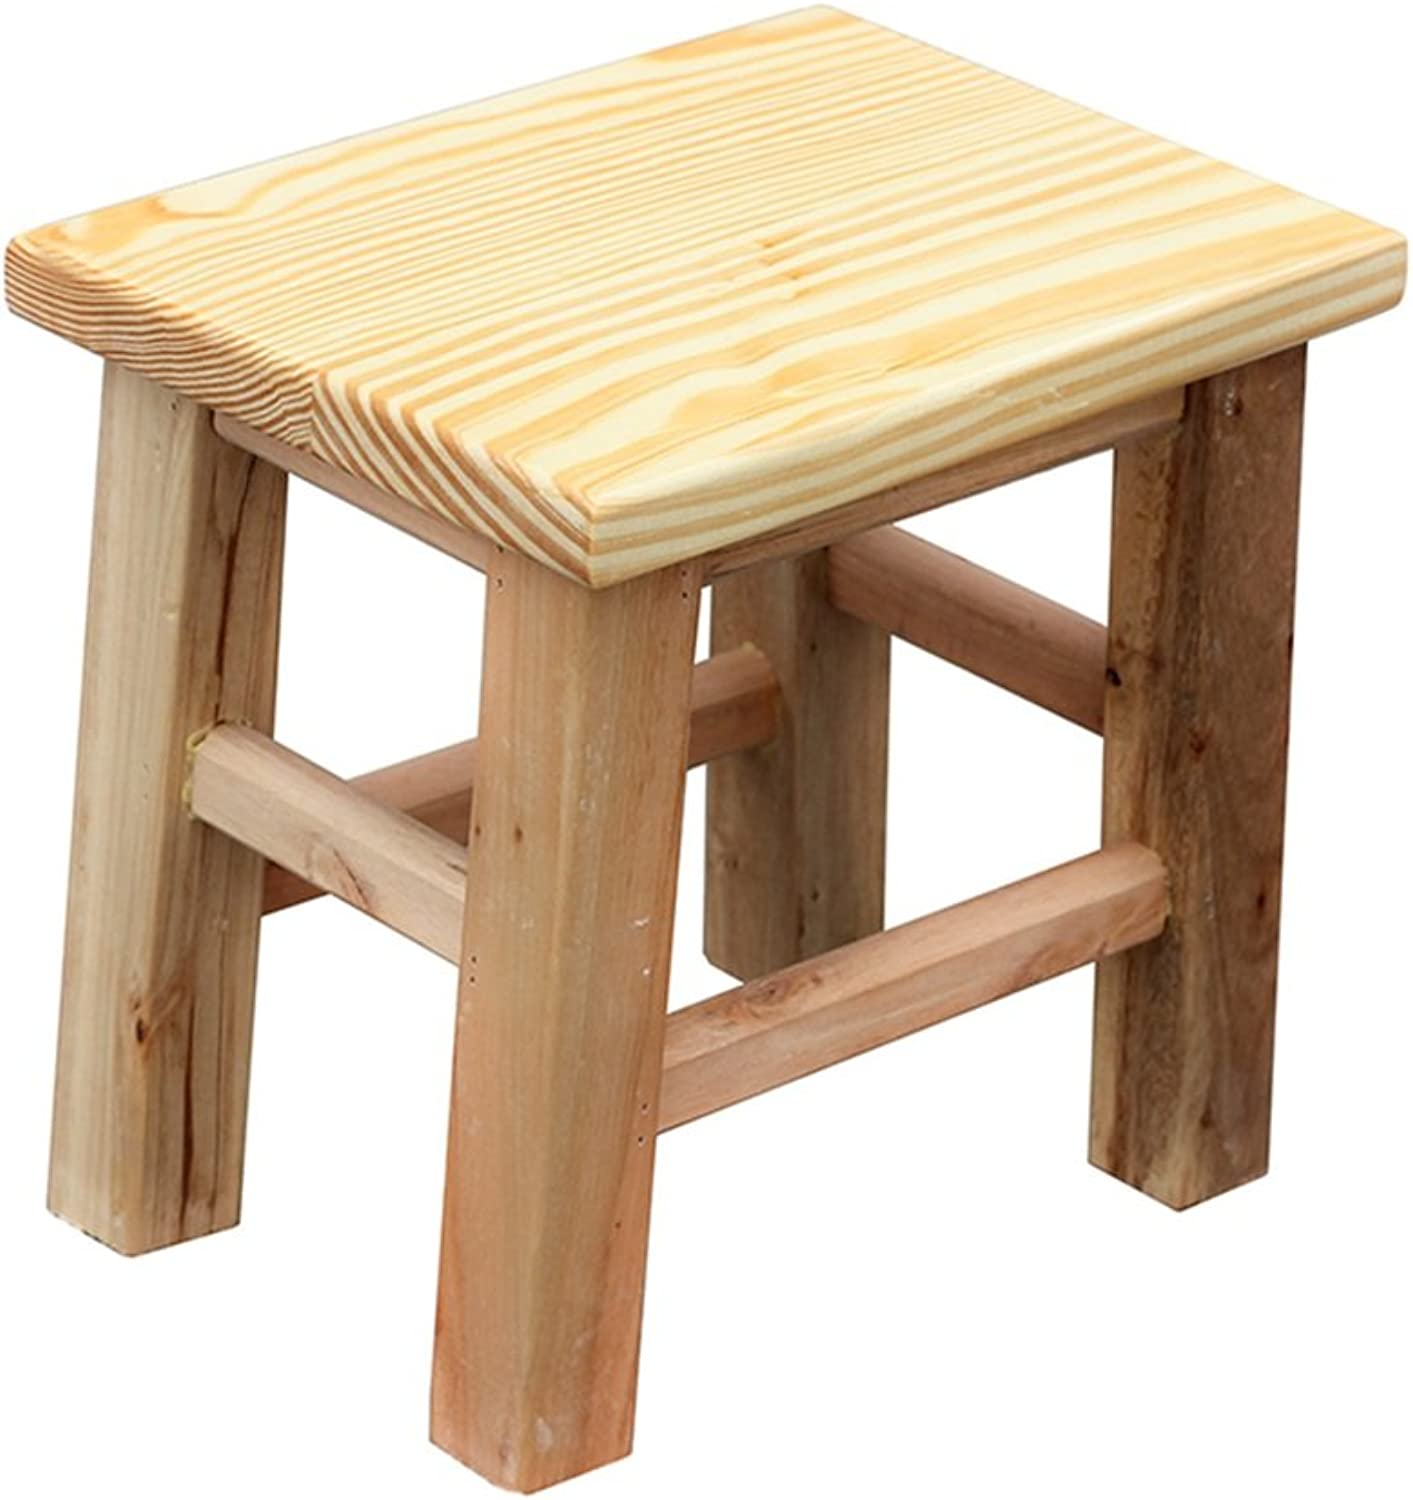 PENGFEI Solid Wood Stool Portable Doorway Wear shoes Stools Bench Bathroom Kitchen Ascend Thicken Footstool Furniture (Size   26x20x25.5CM)